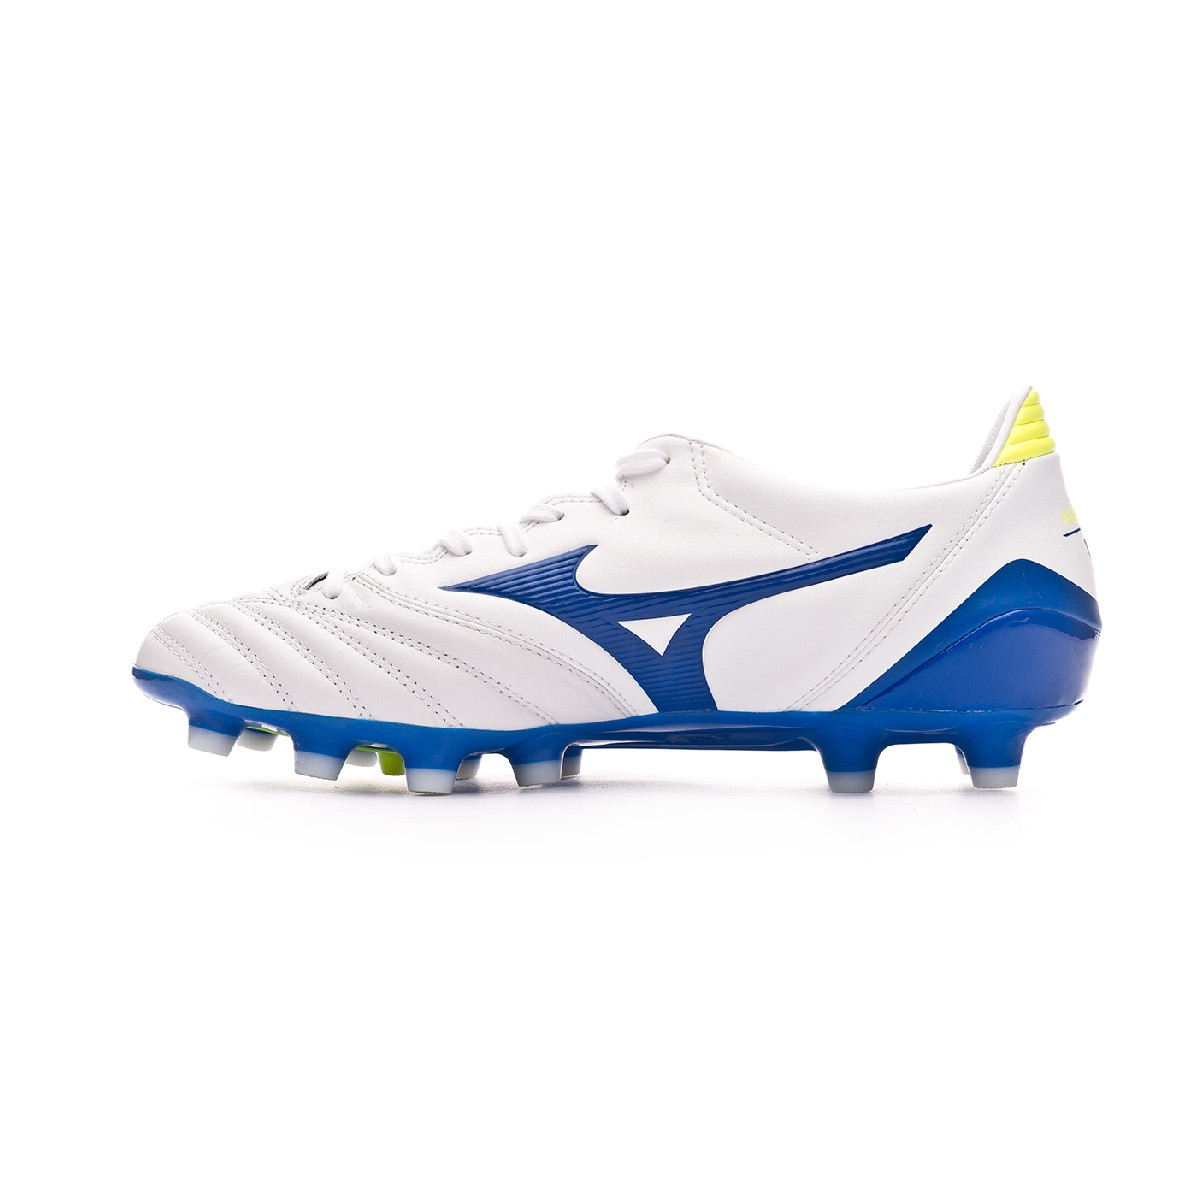 881c37bb4cab Football Boots Mizuno Morelia Neo KL II White-Wave cup blue-Safety yellow -  Football store Fútbol Emotion